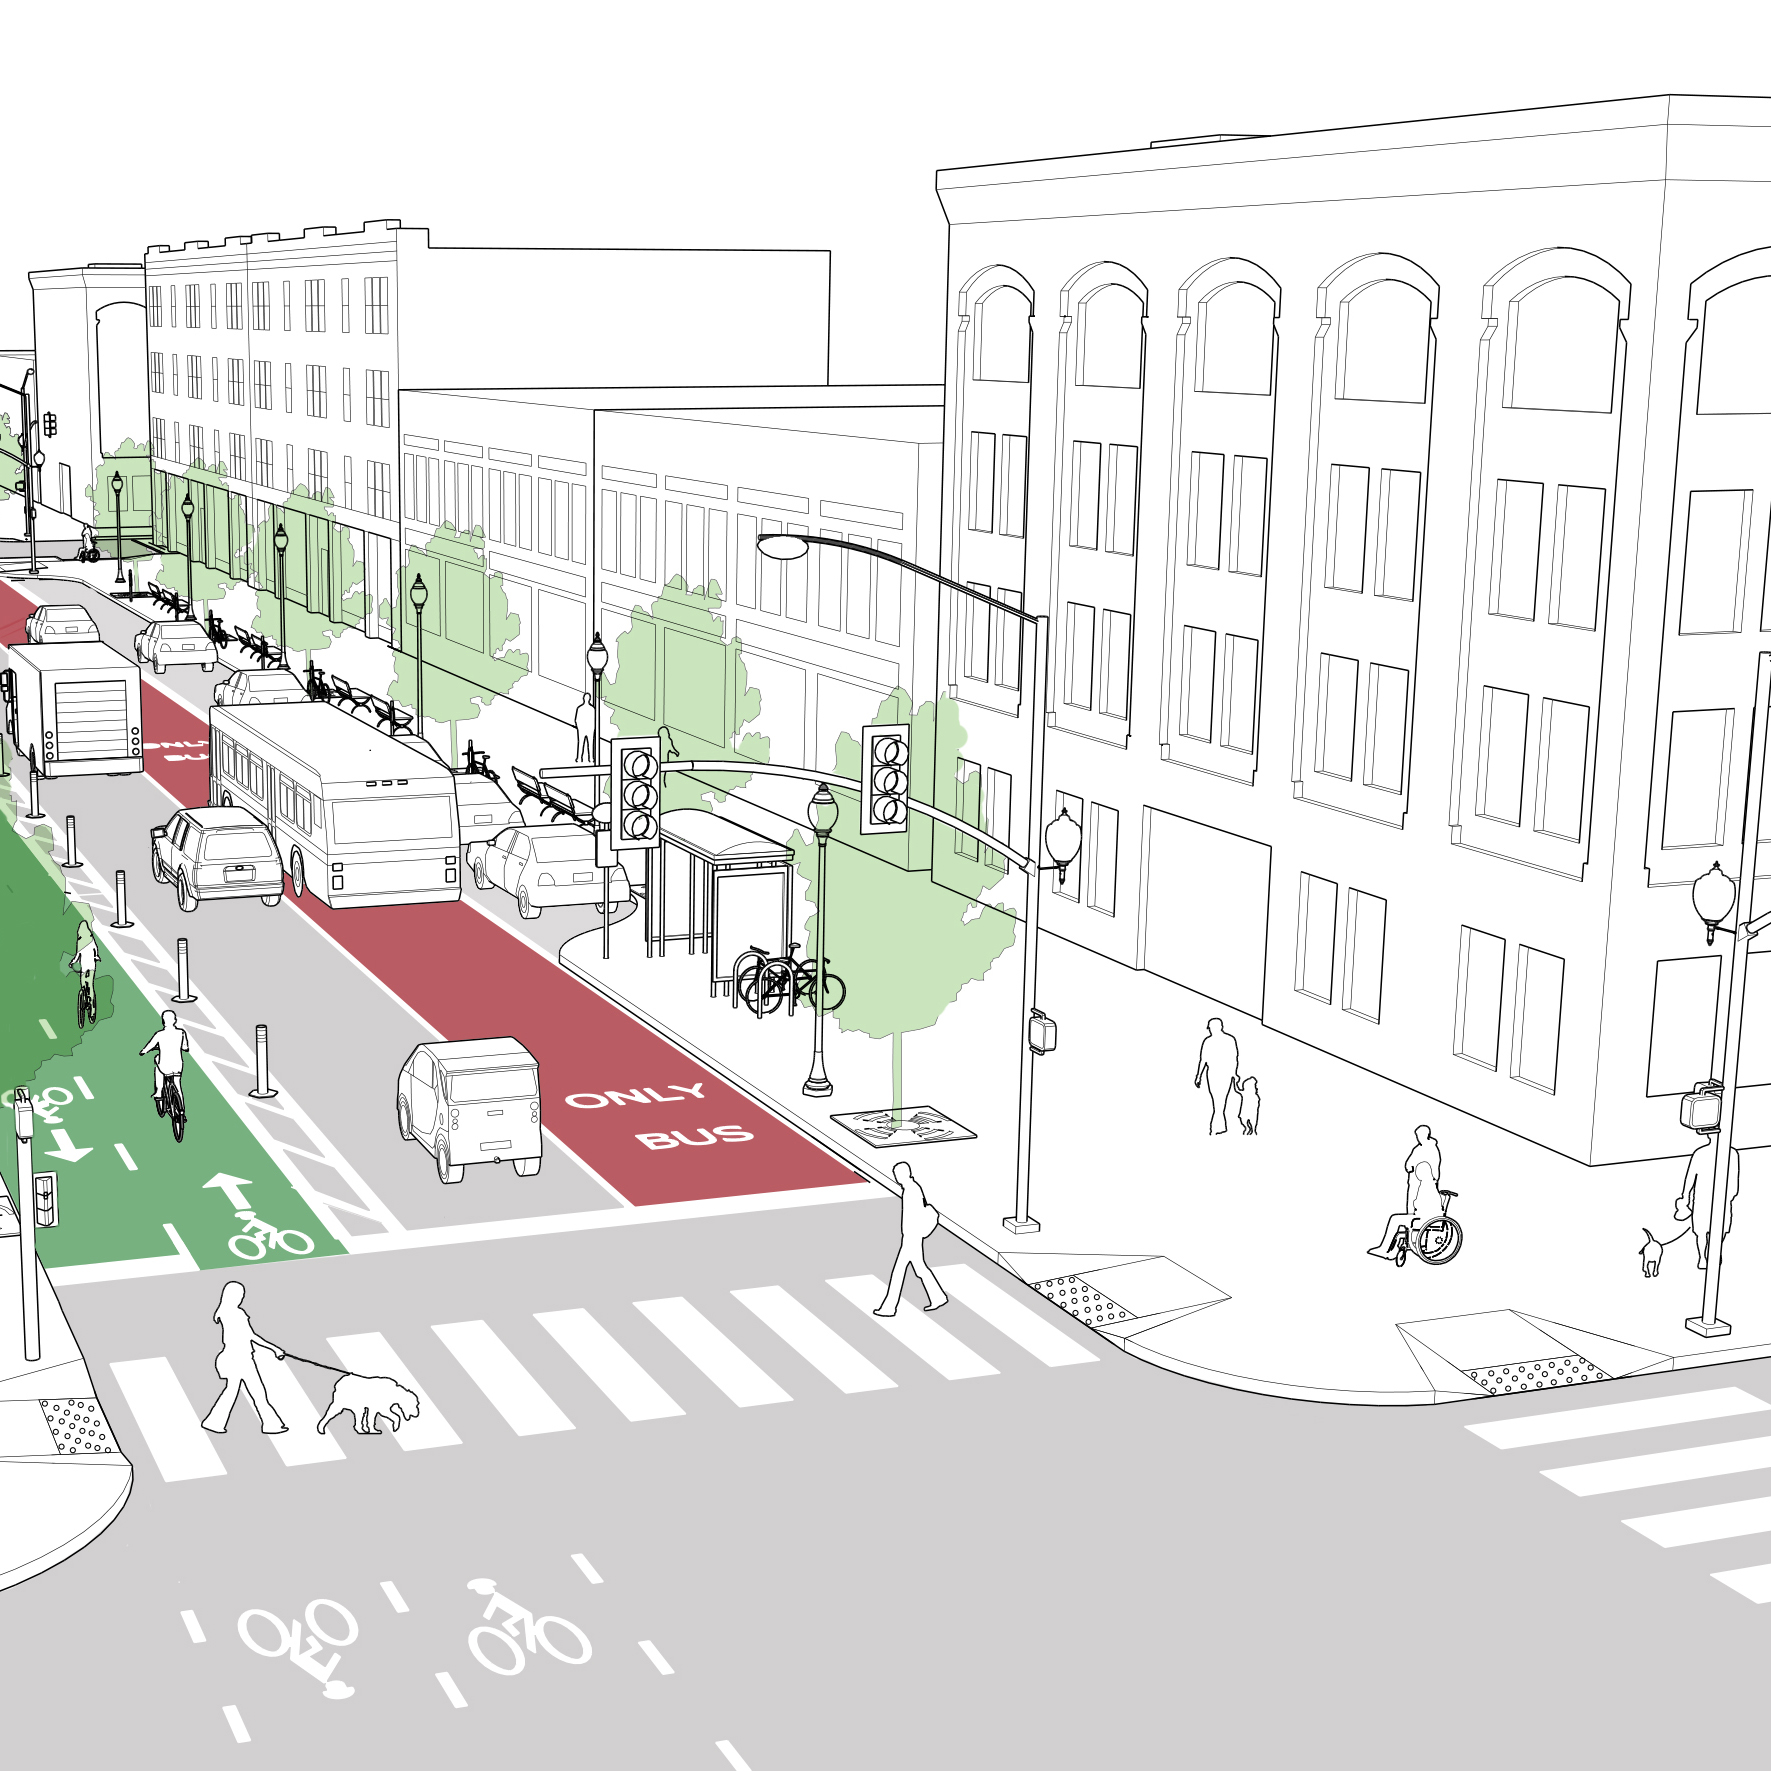 Street Furniture Design Guidelines bus stops - national association of city transportation officials